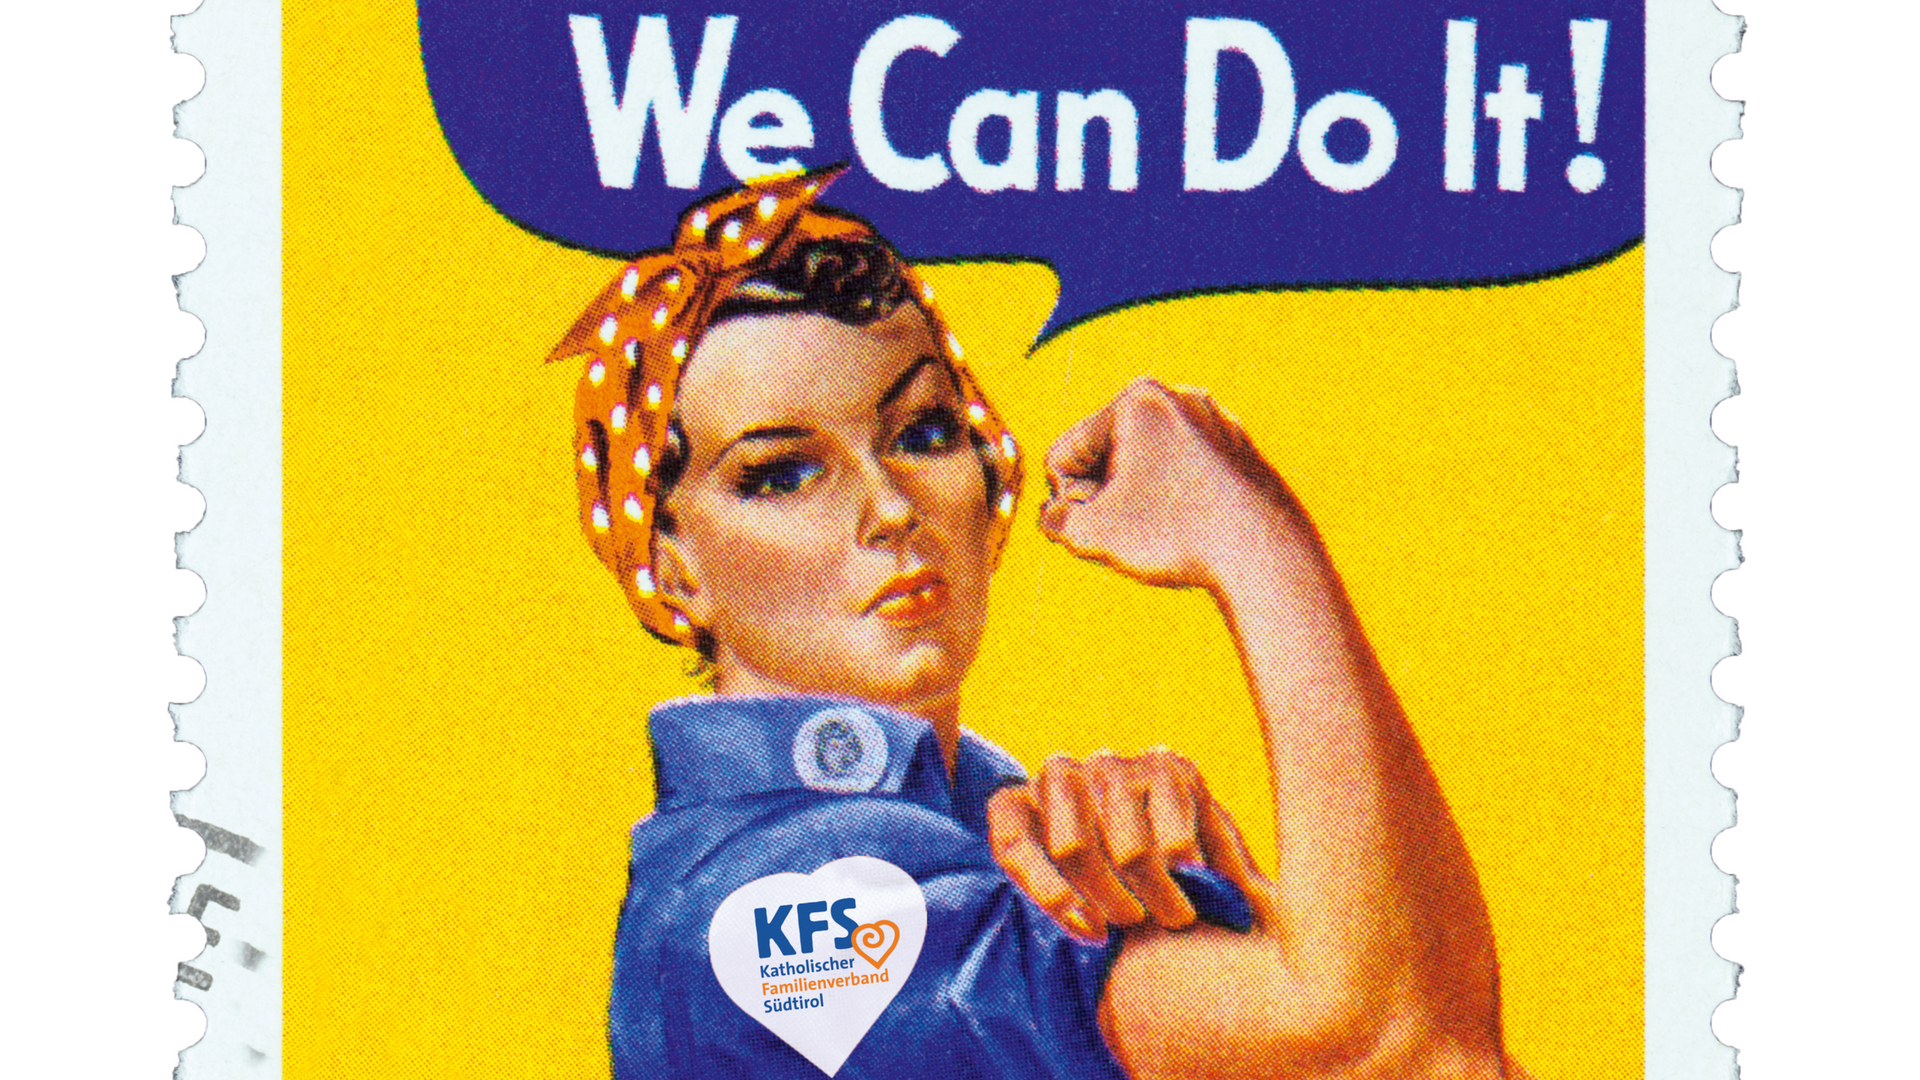 2018 Weltfrauentag KFS We can do it